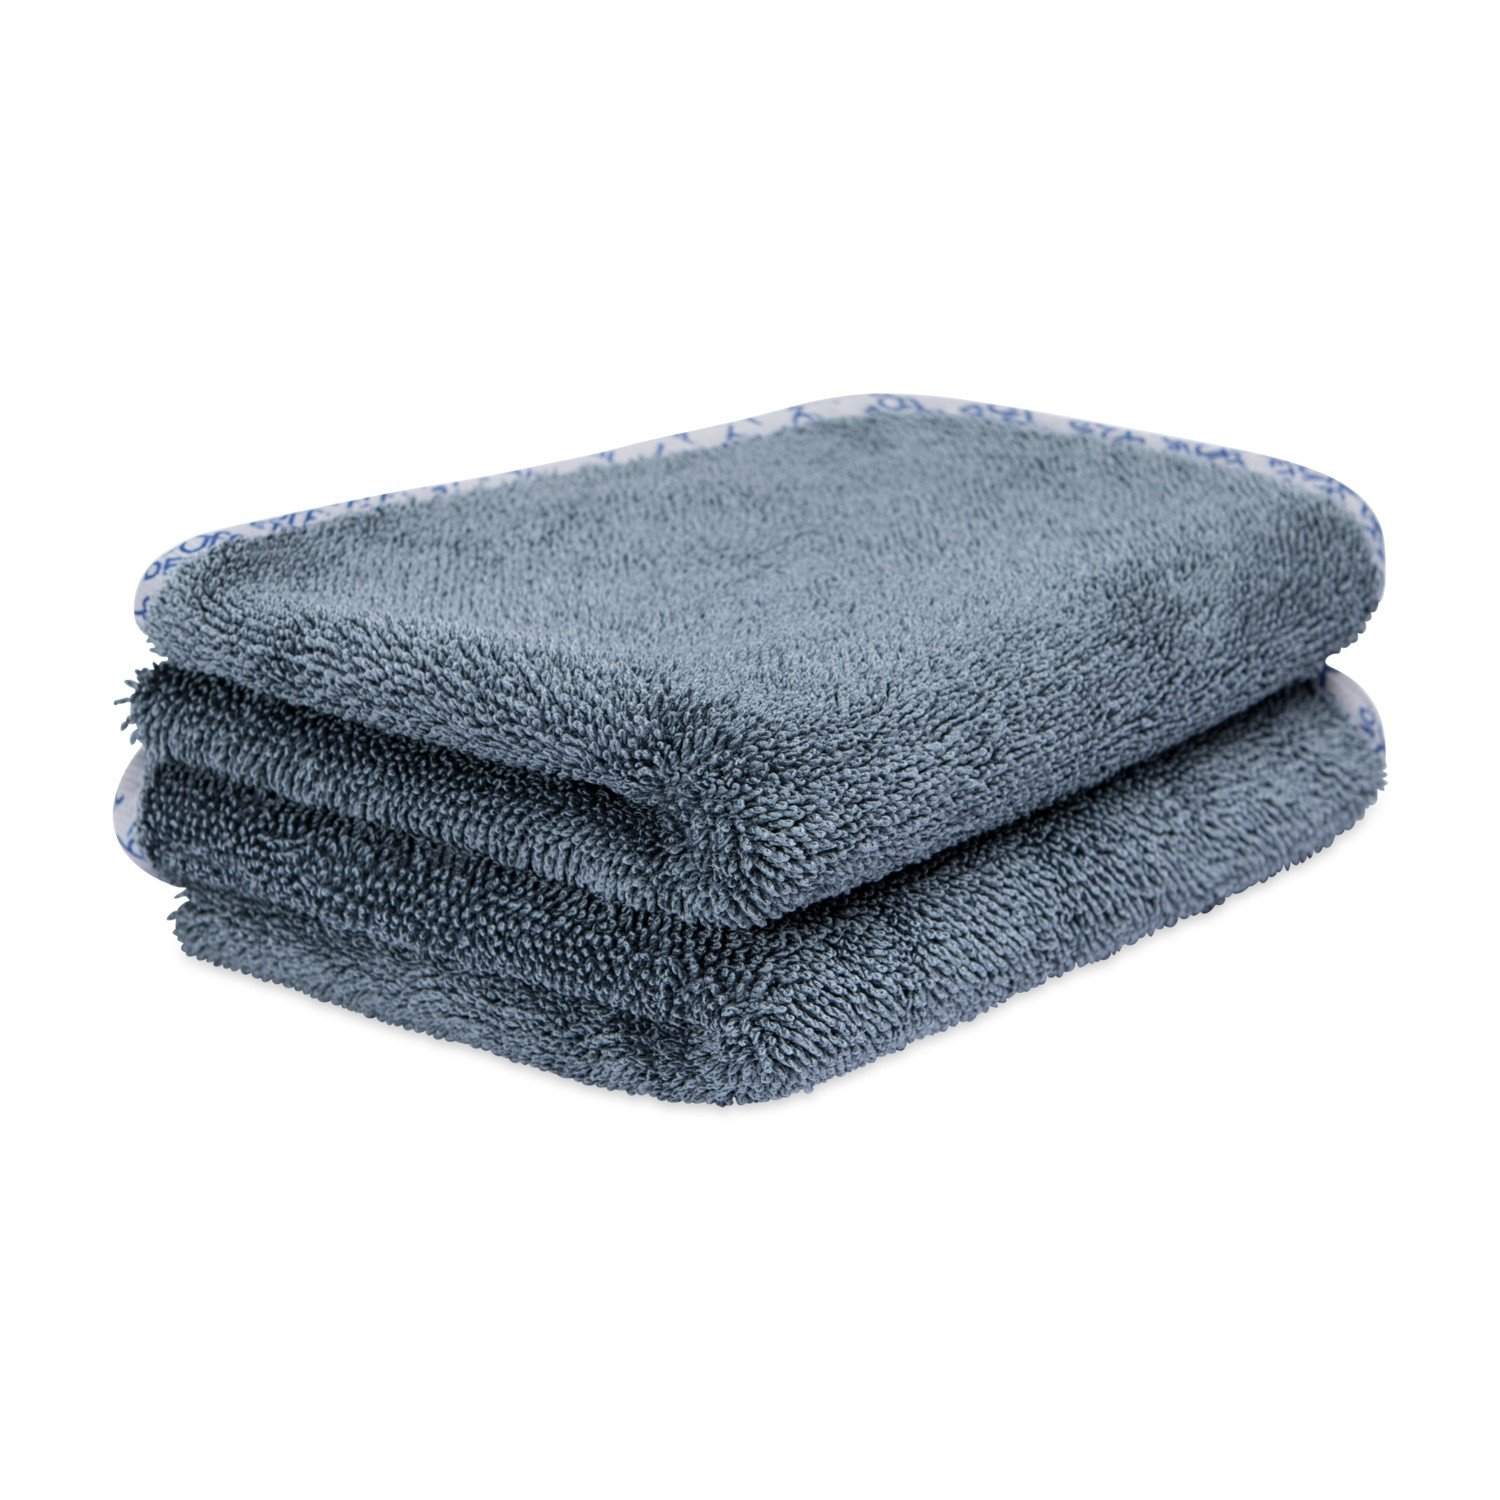 Premium Microfiber Vehicle Drying Towel 500 GSM Soft Satin Piped Borders Large 24 x 36 Microfiber Wholesale Long Terry Microfibers For Fast Drying /& Easy Wringing Buff Detail